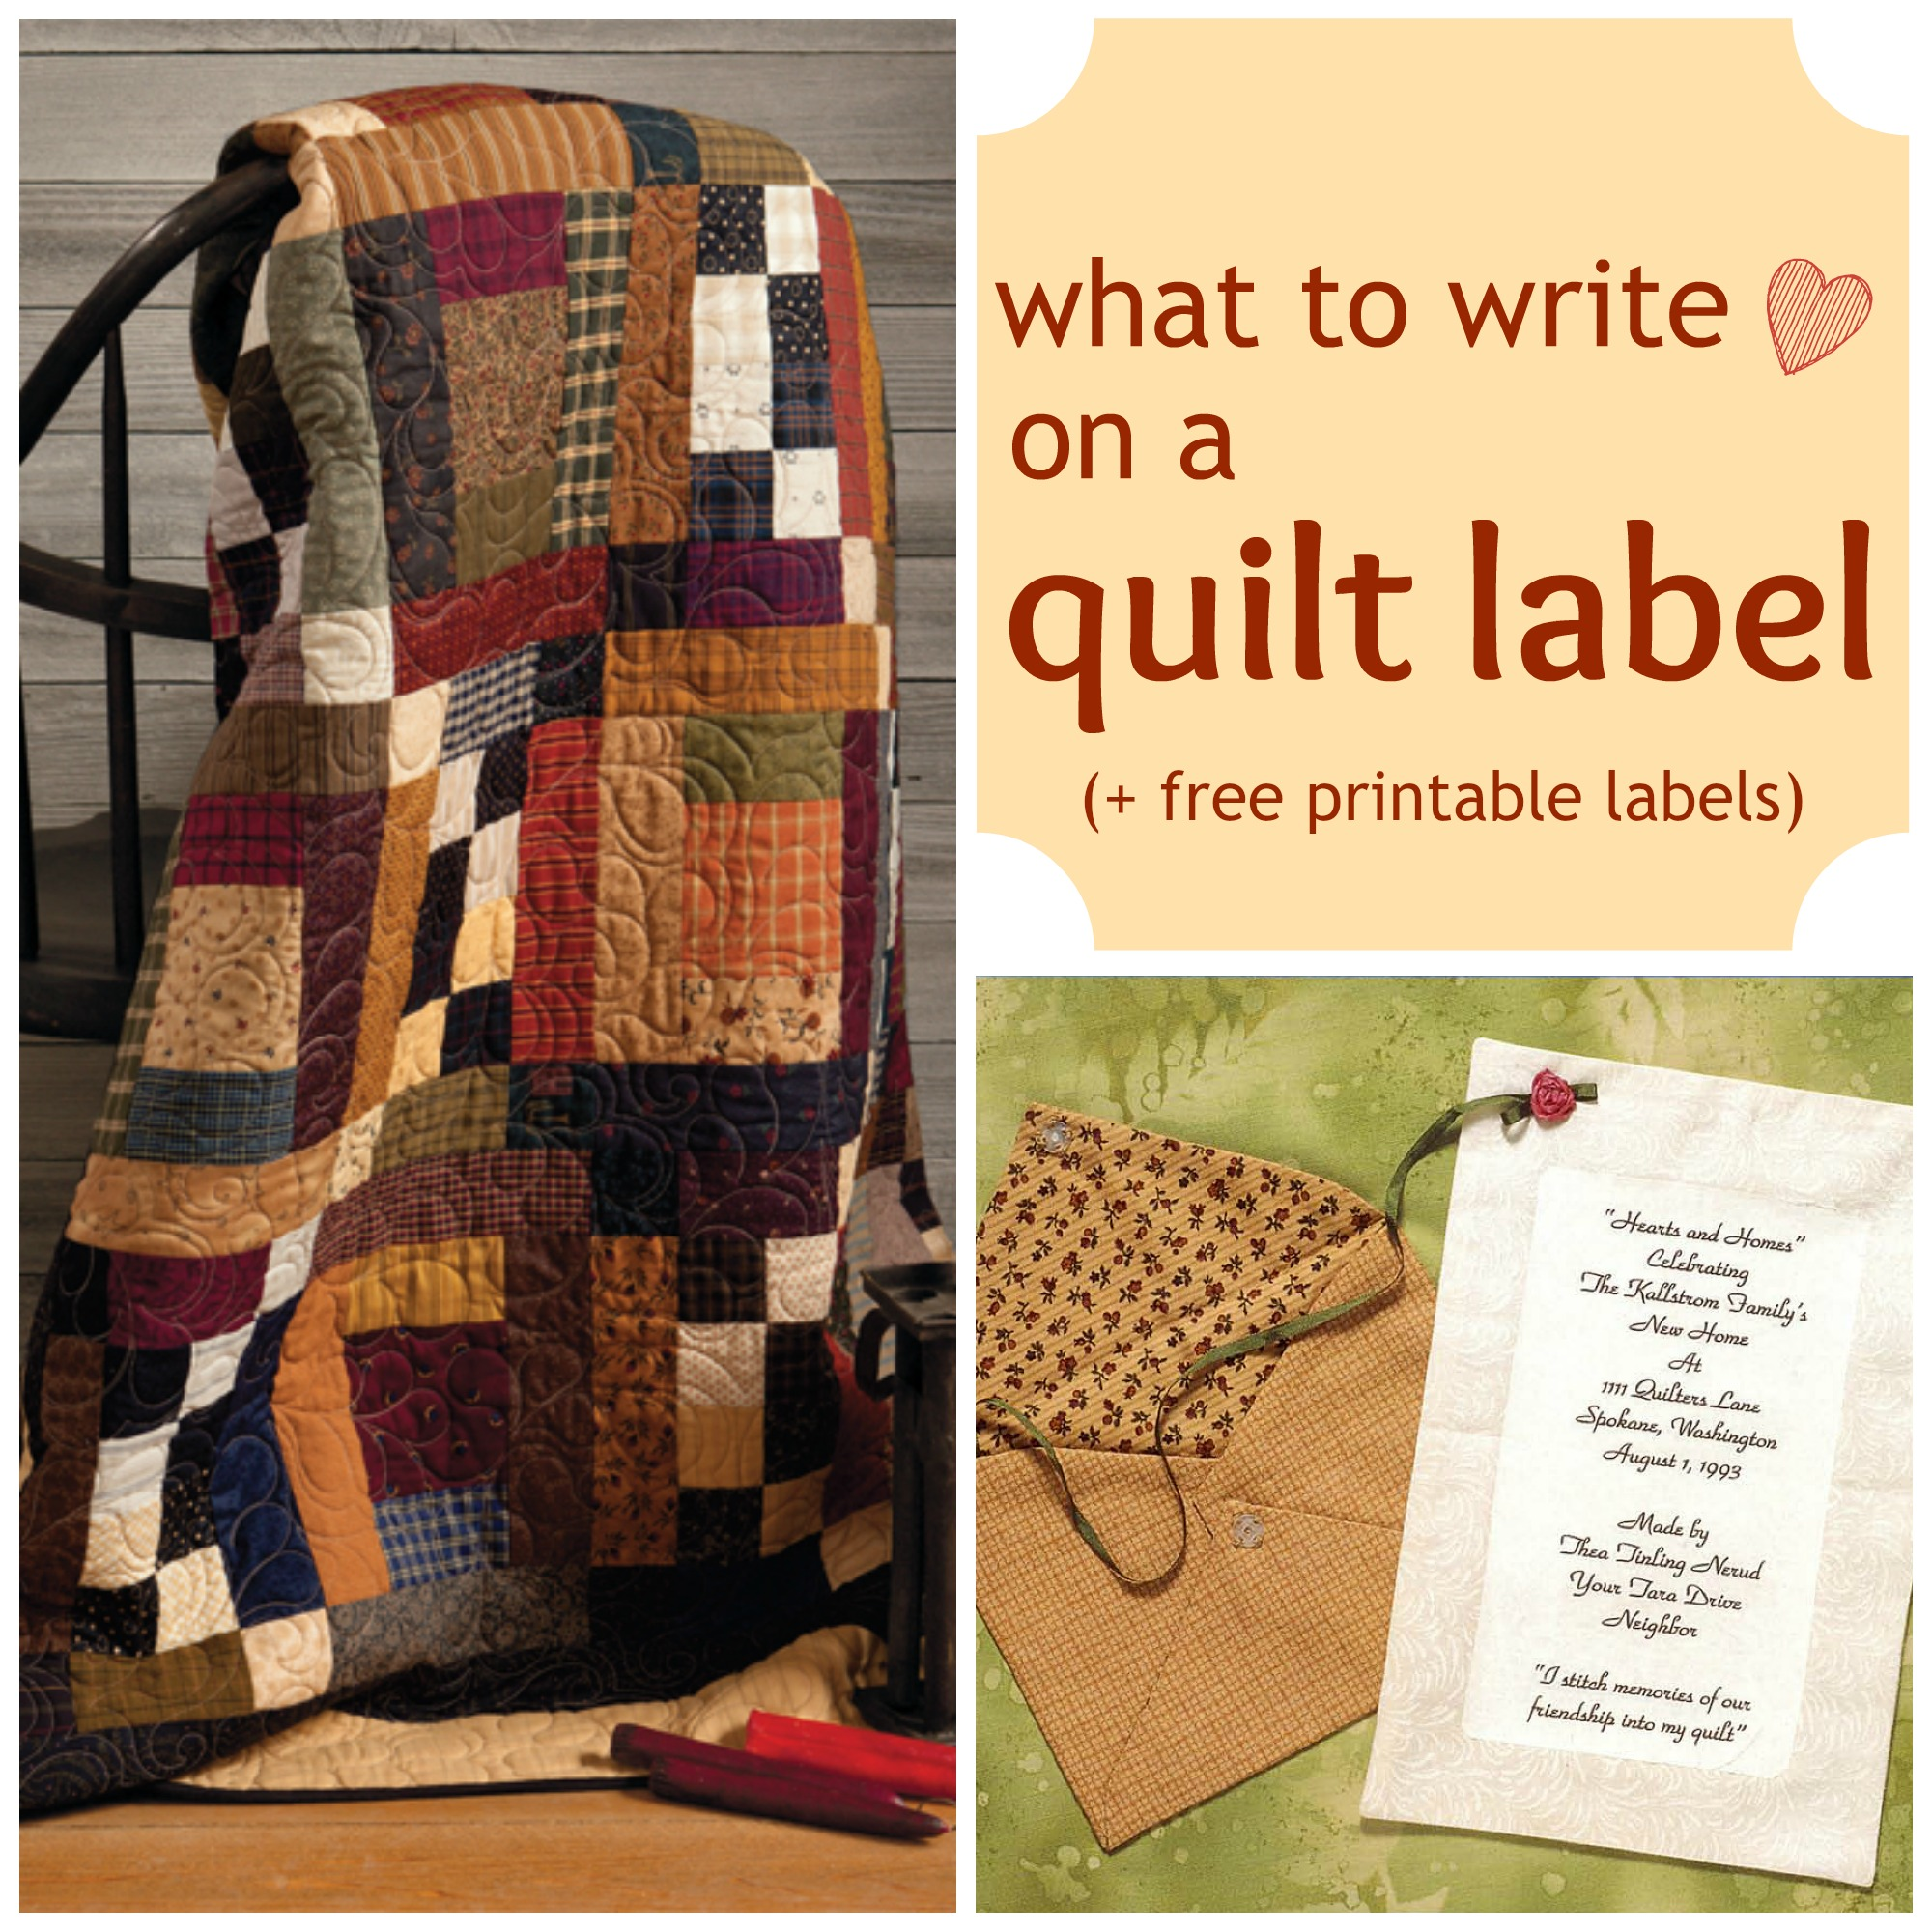 what to write on a quilt label